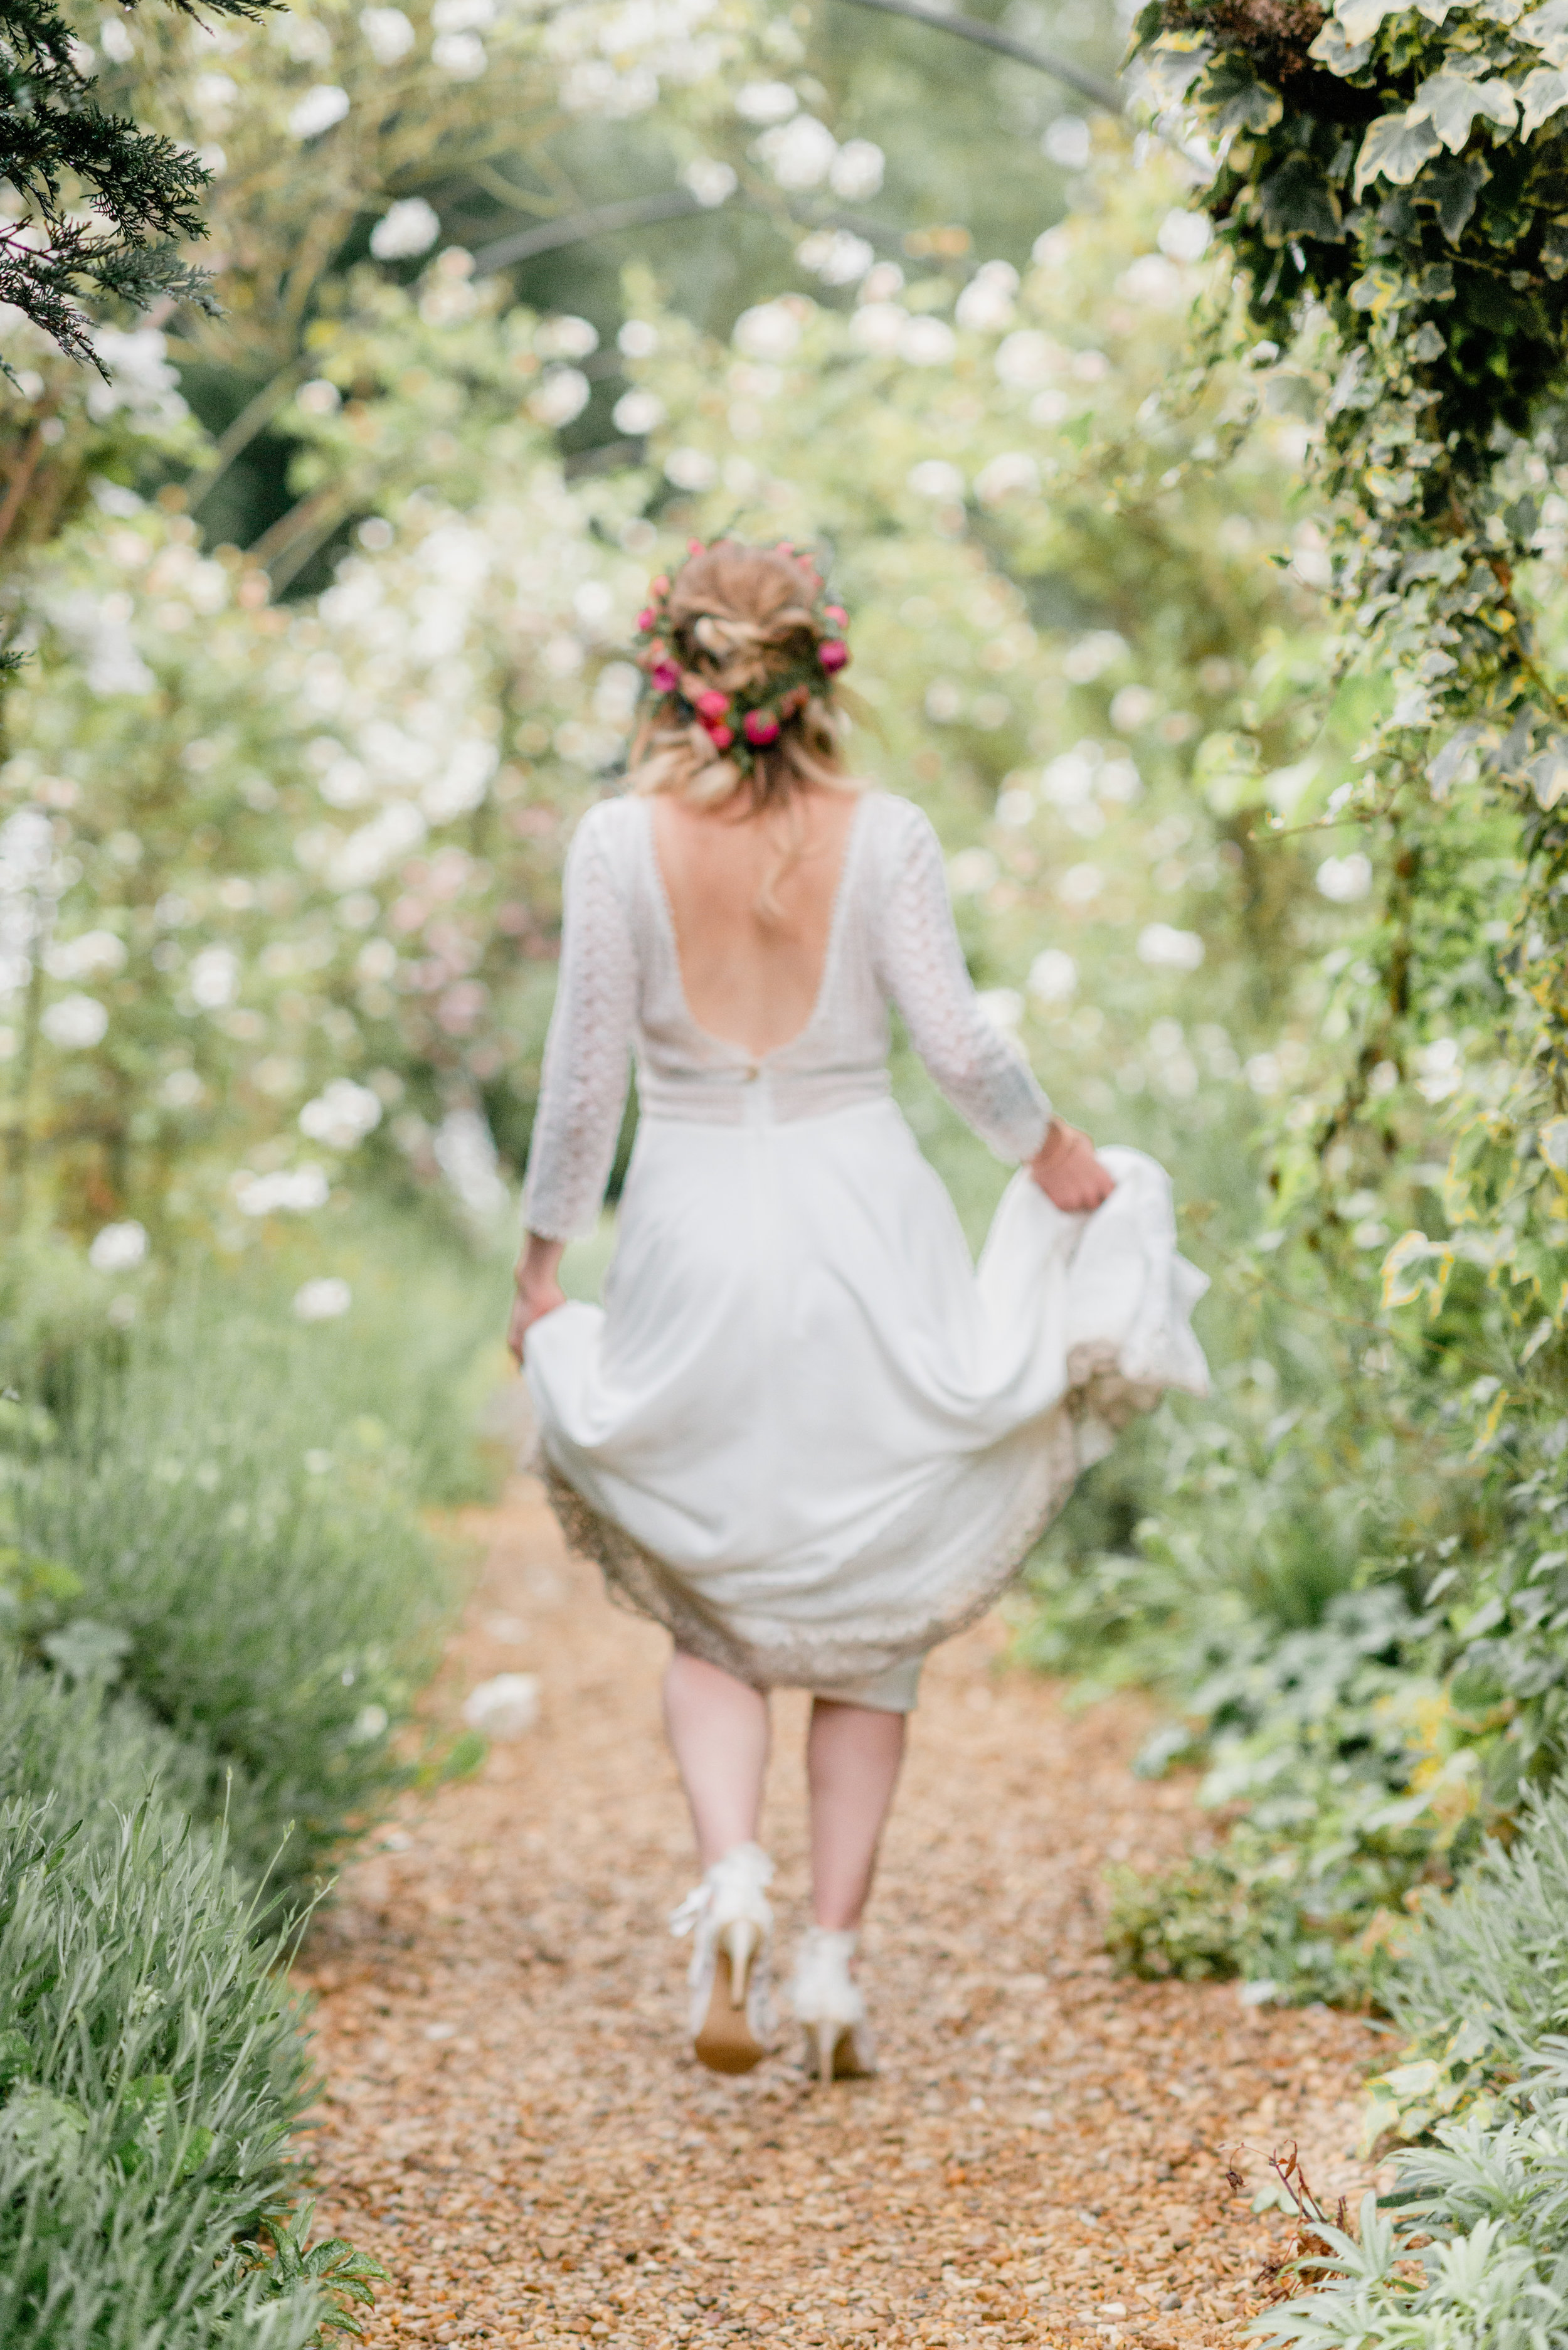 S+A_William Cecil Wedding_Boho Wedding_Fine Art Wedding_Rebekah Robert Photography-899.jpg